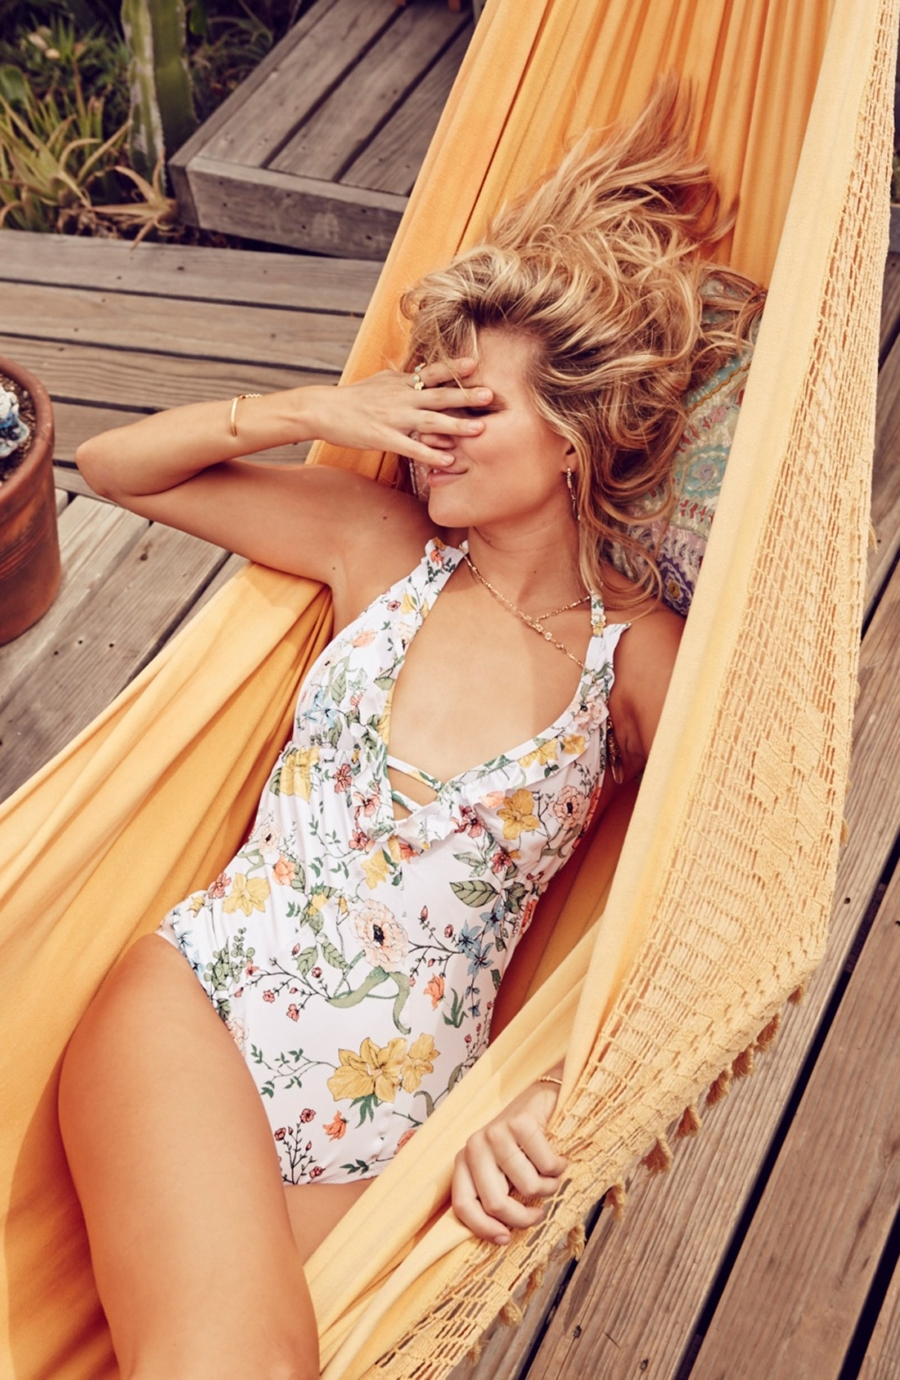 Floral Patterned One-Piece - One-Piece Swimsuits That Are Sexier Than A Bikini // Notjessfashion.com